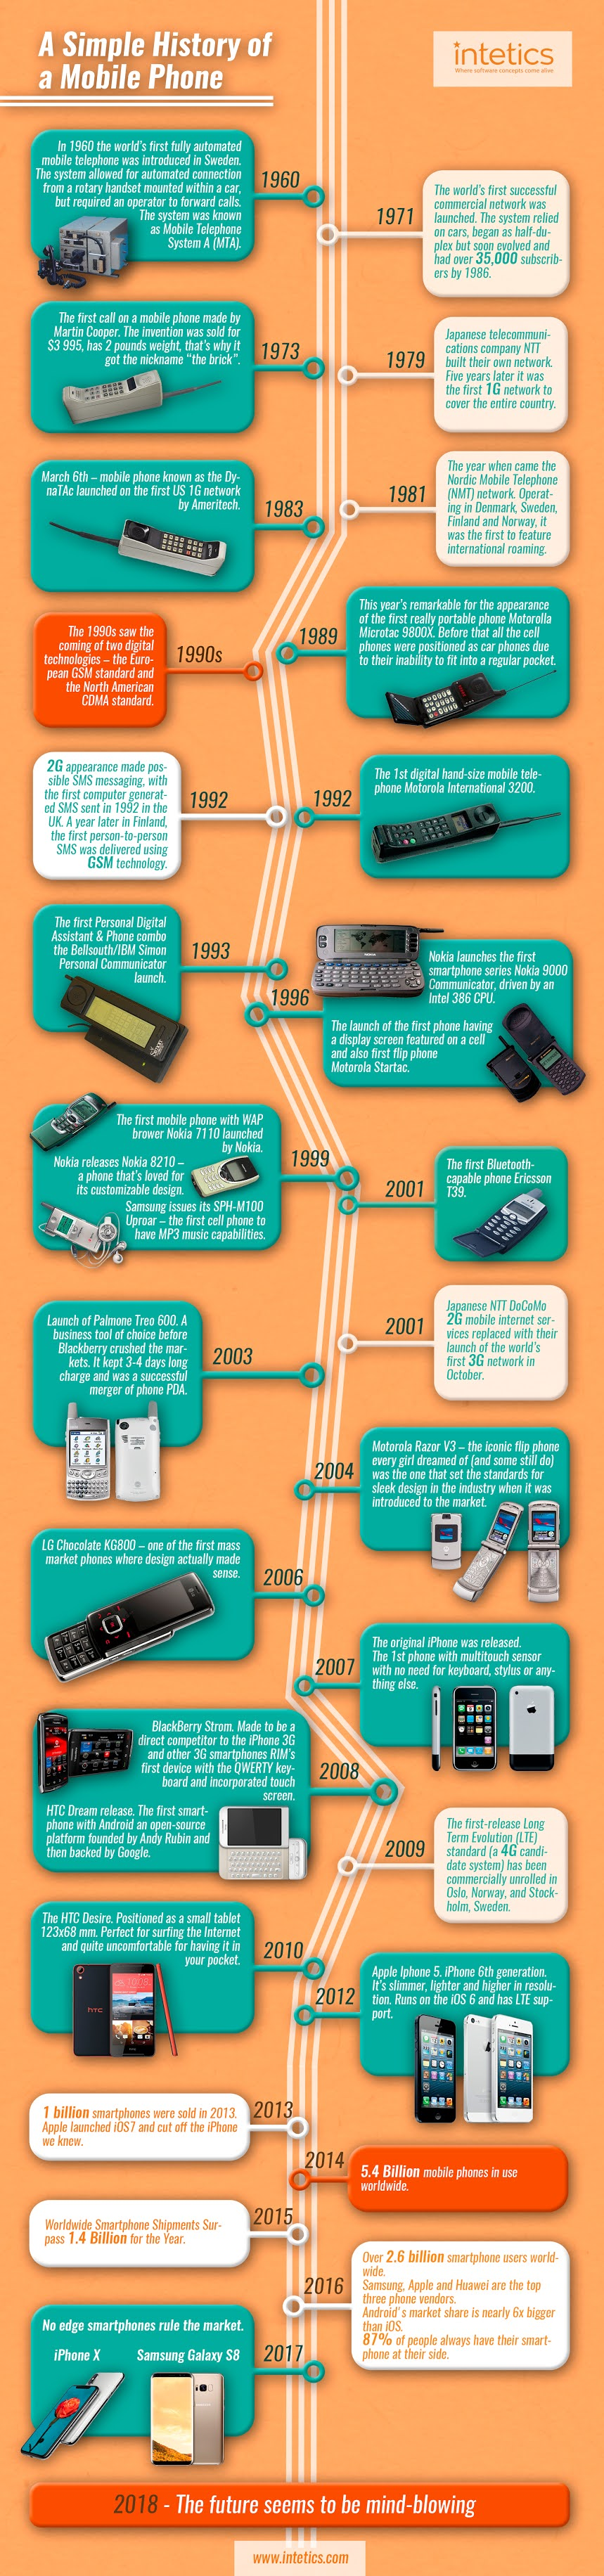 A simple History of a Mobile Phone #infographic #Mobile Phone #History